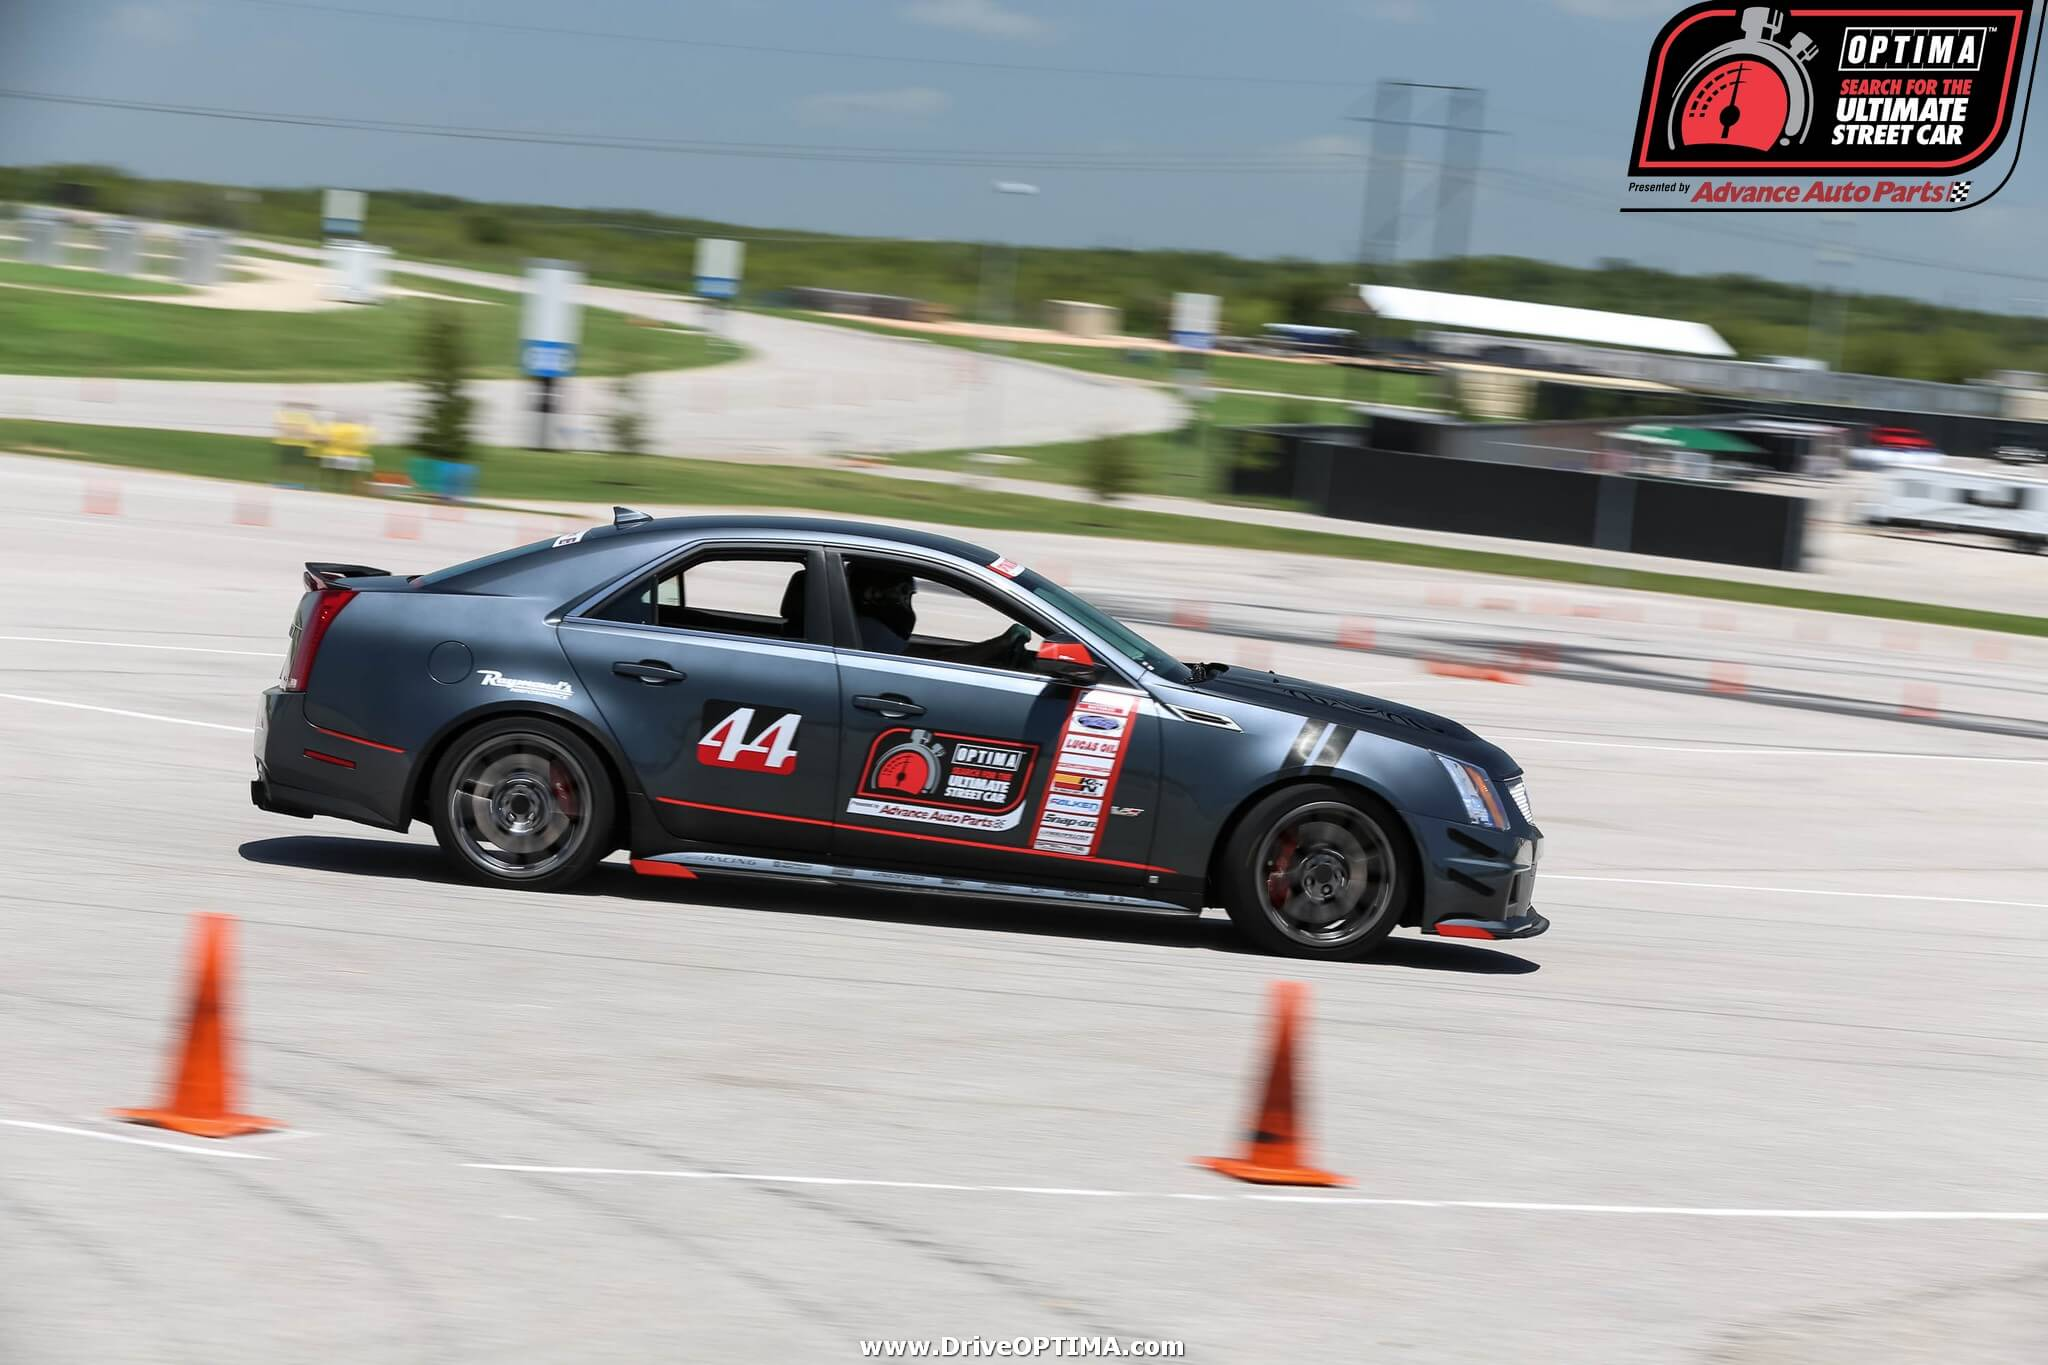 Mike-Gallagher-2009-Cadillac-CTS-V-DriveOPTIMA-Circuit-of-the-Americas-2016_82